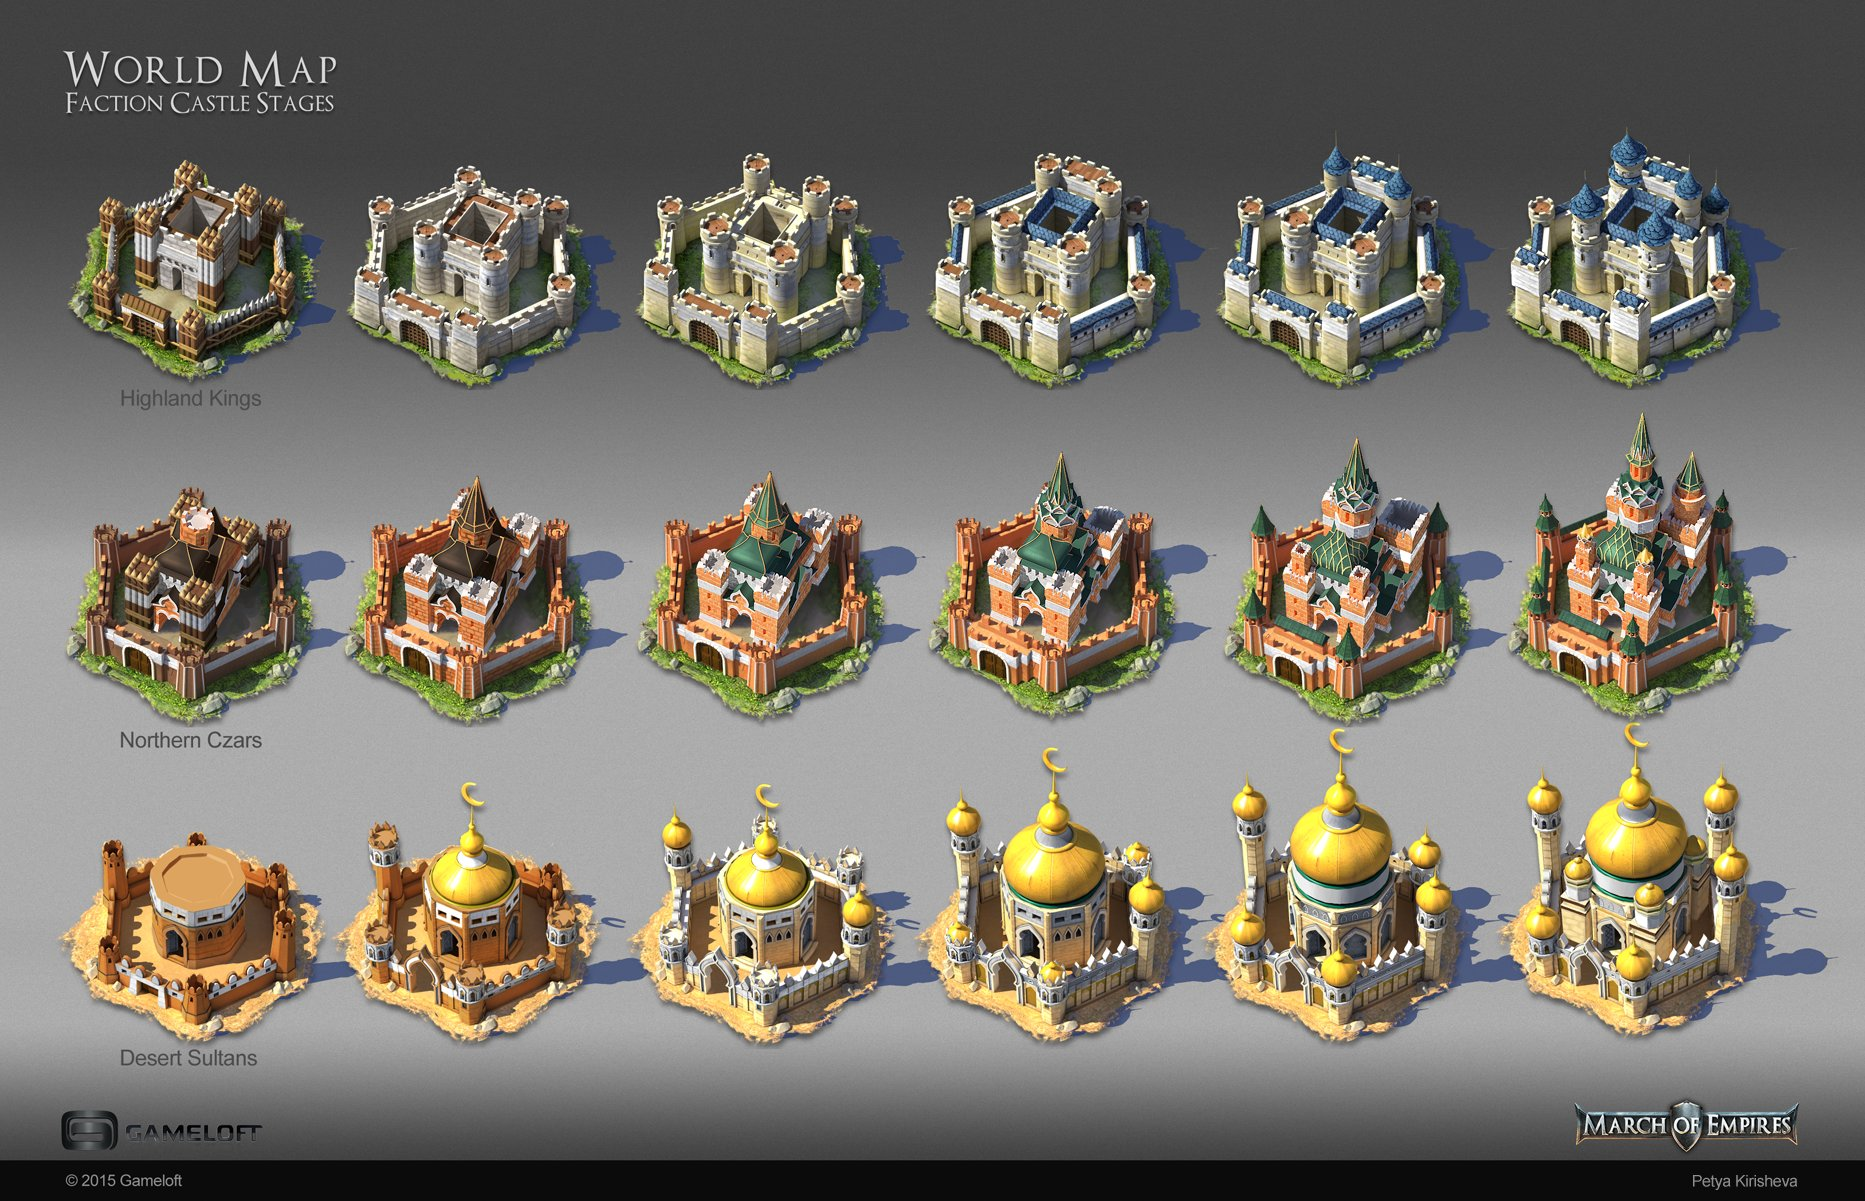 Petya kirisheva world map concepts and buildings gumiabroncs Choice Image